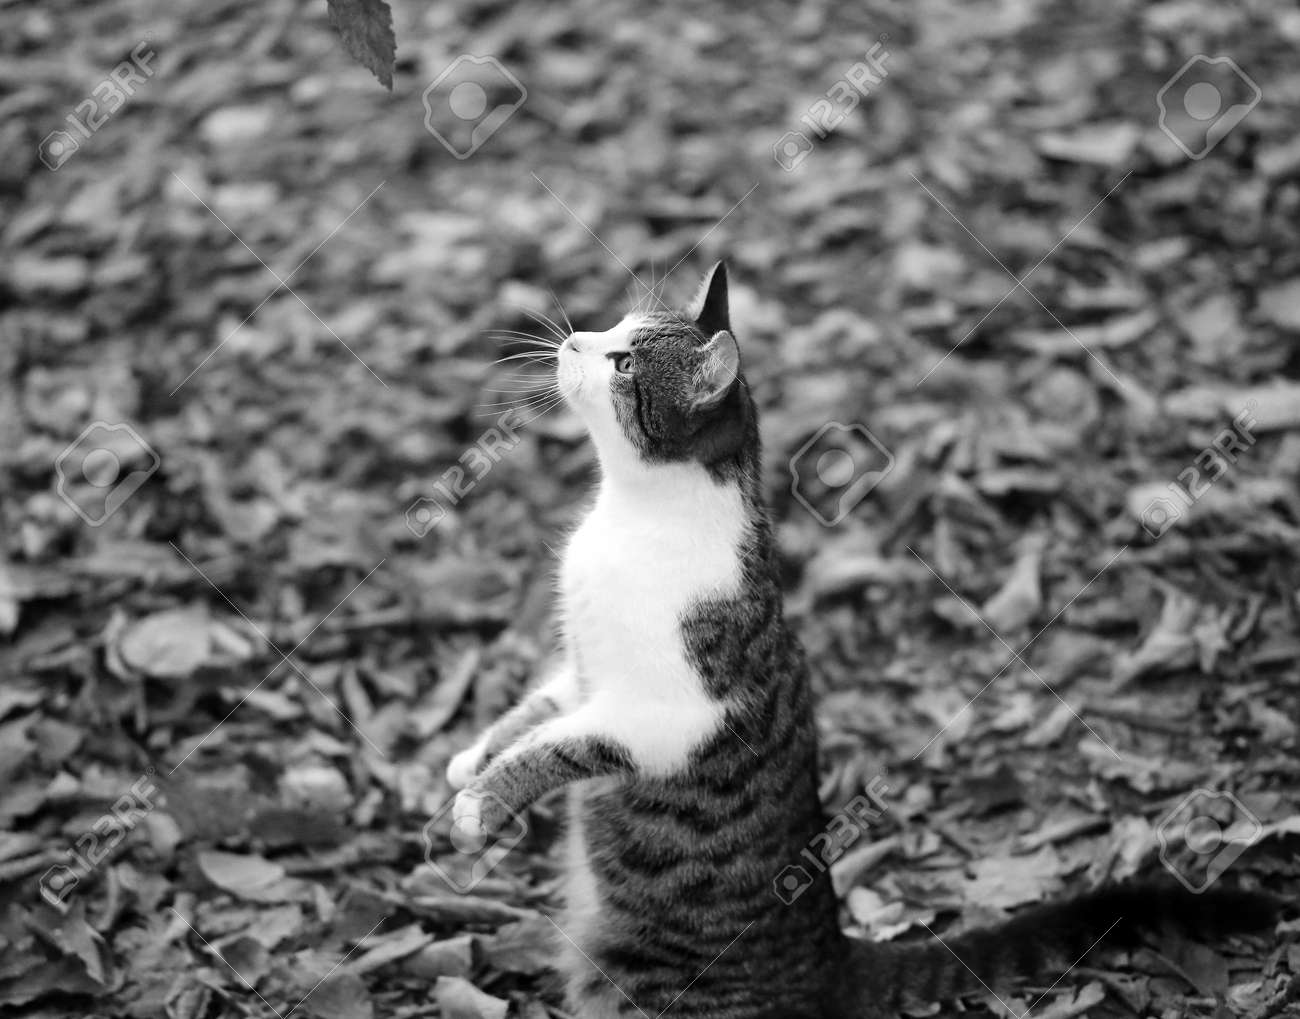 Photo of a cute hungry kitten in the autumn park - 164650872